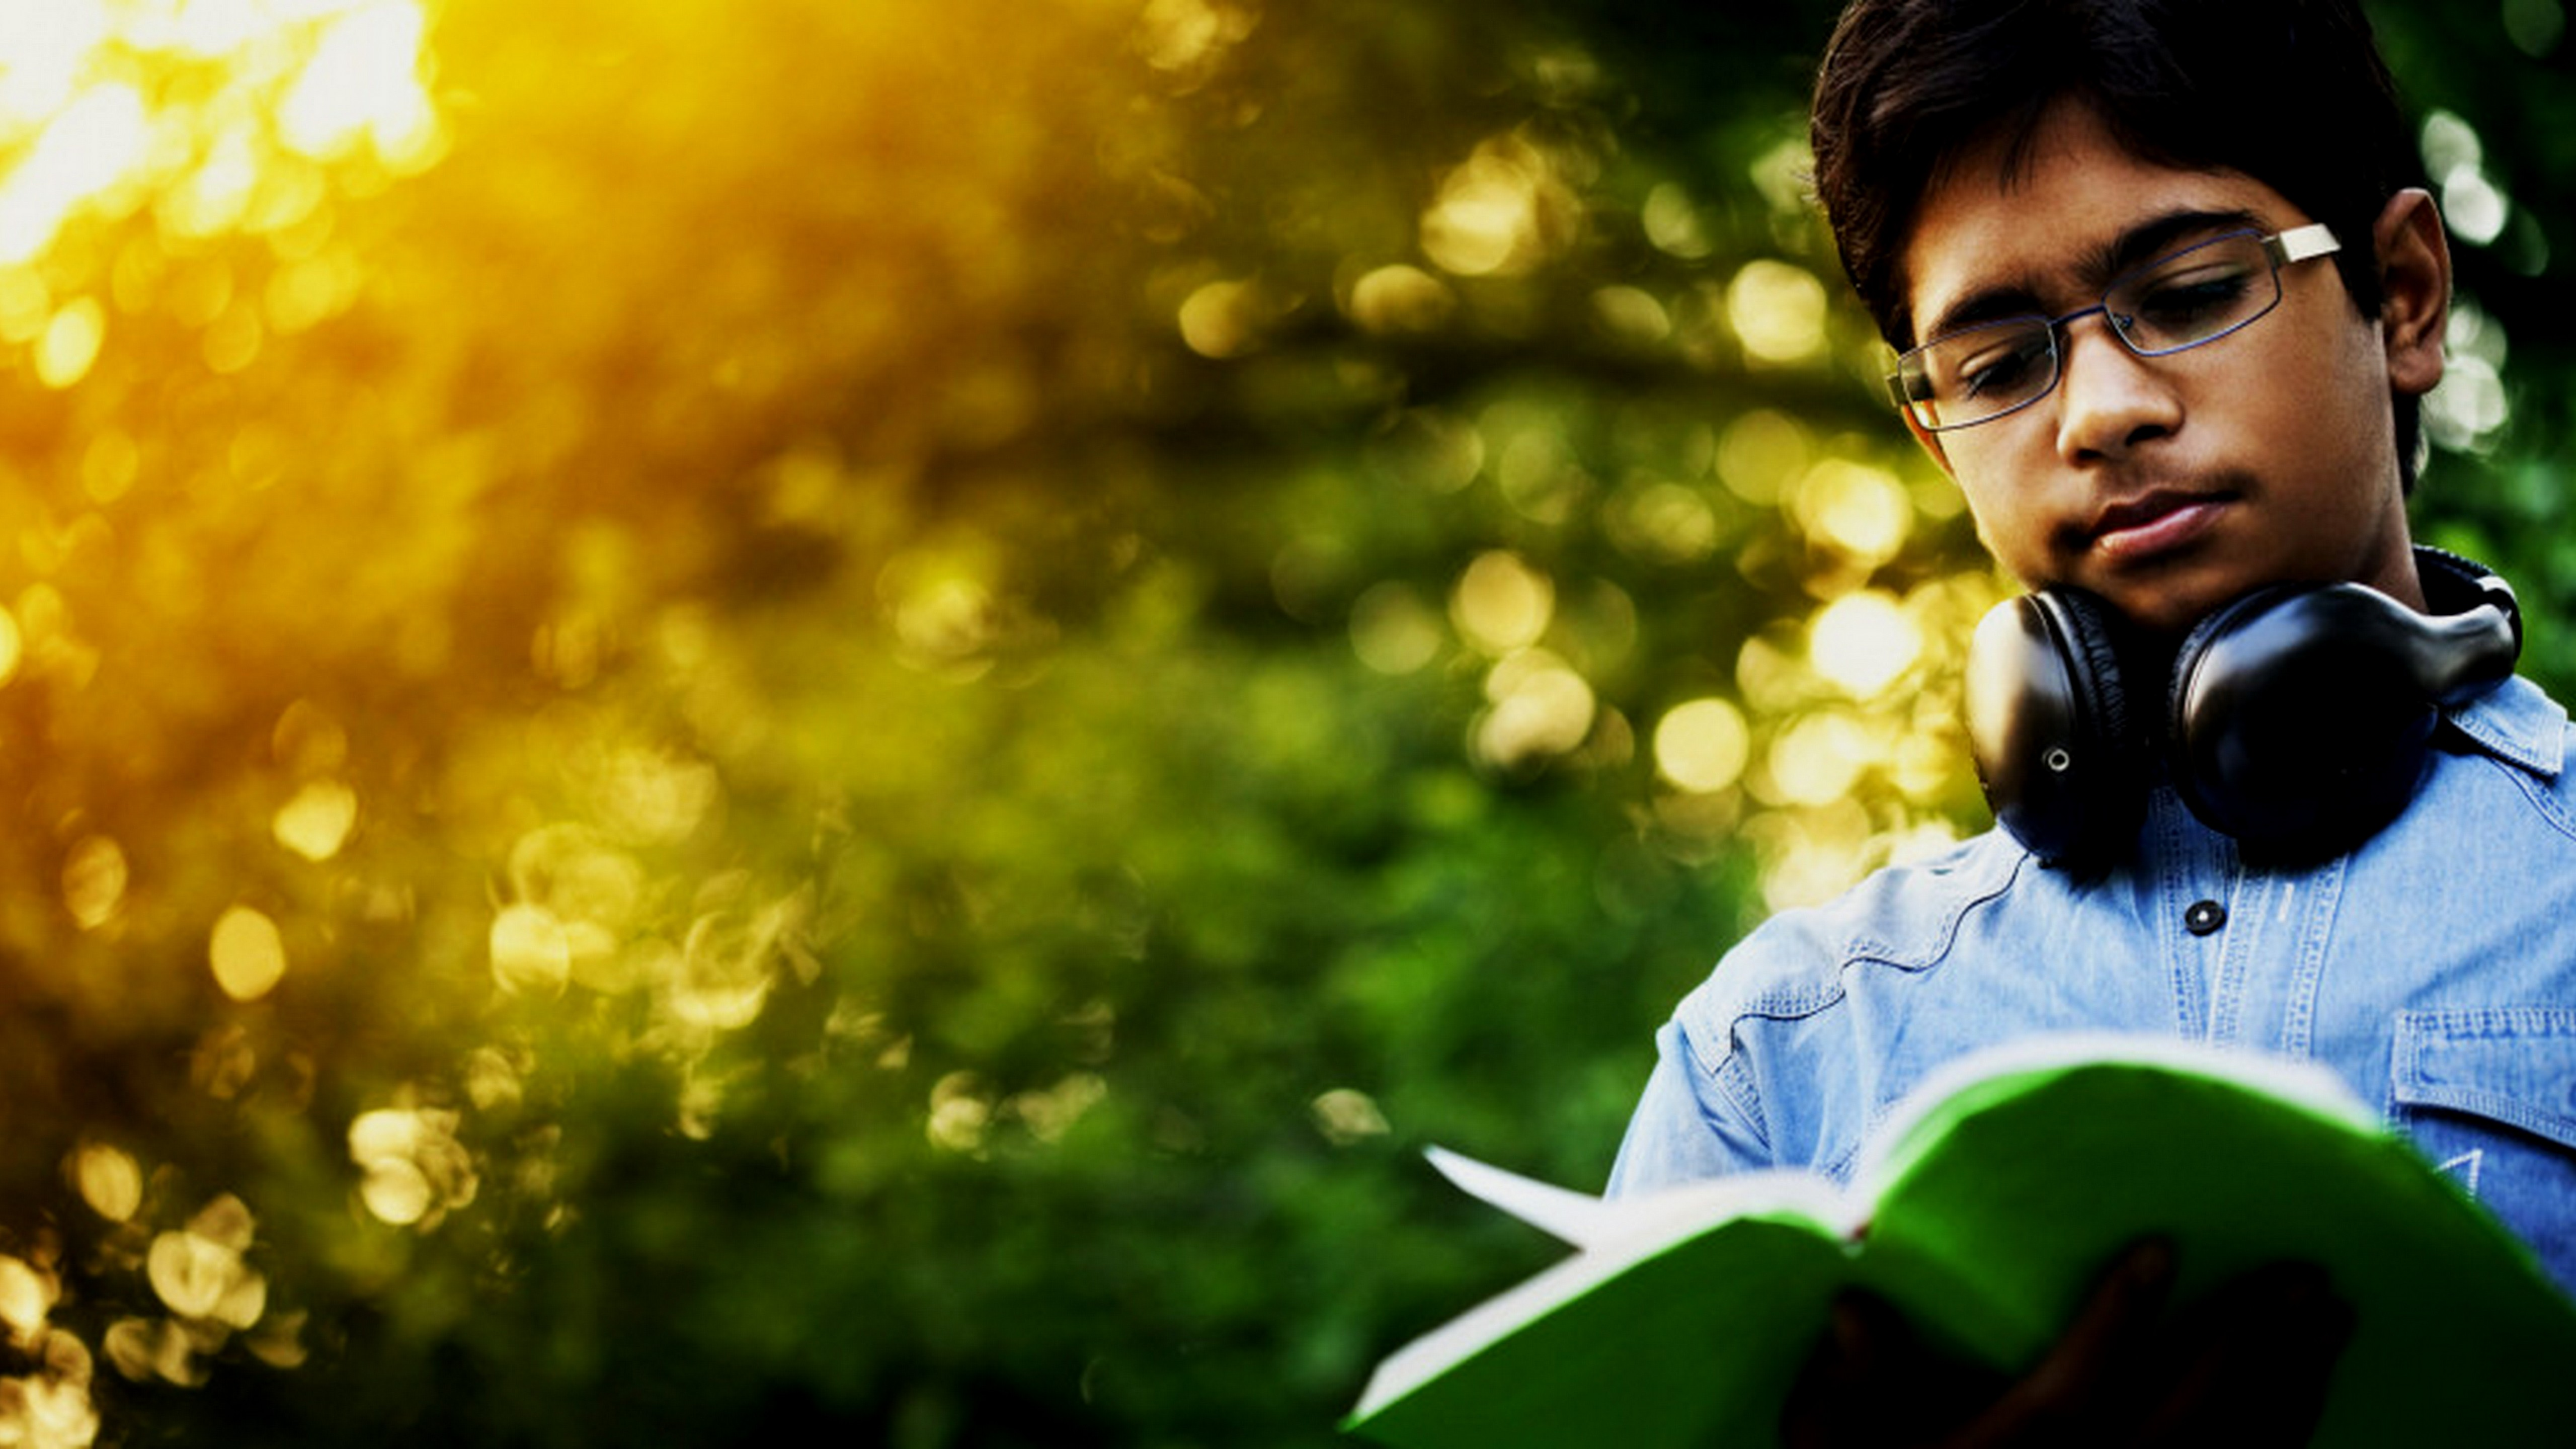 Photo credit: o-TEEN-BOY-READING-OUTSIDE-facebook